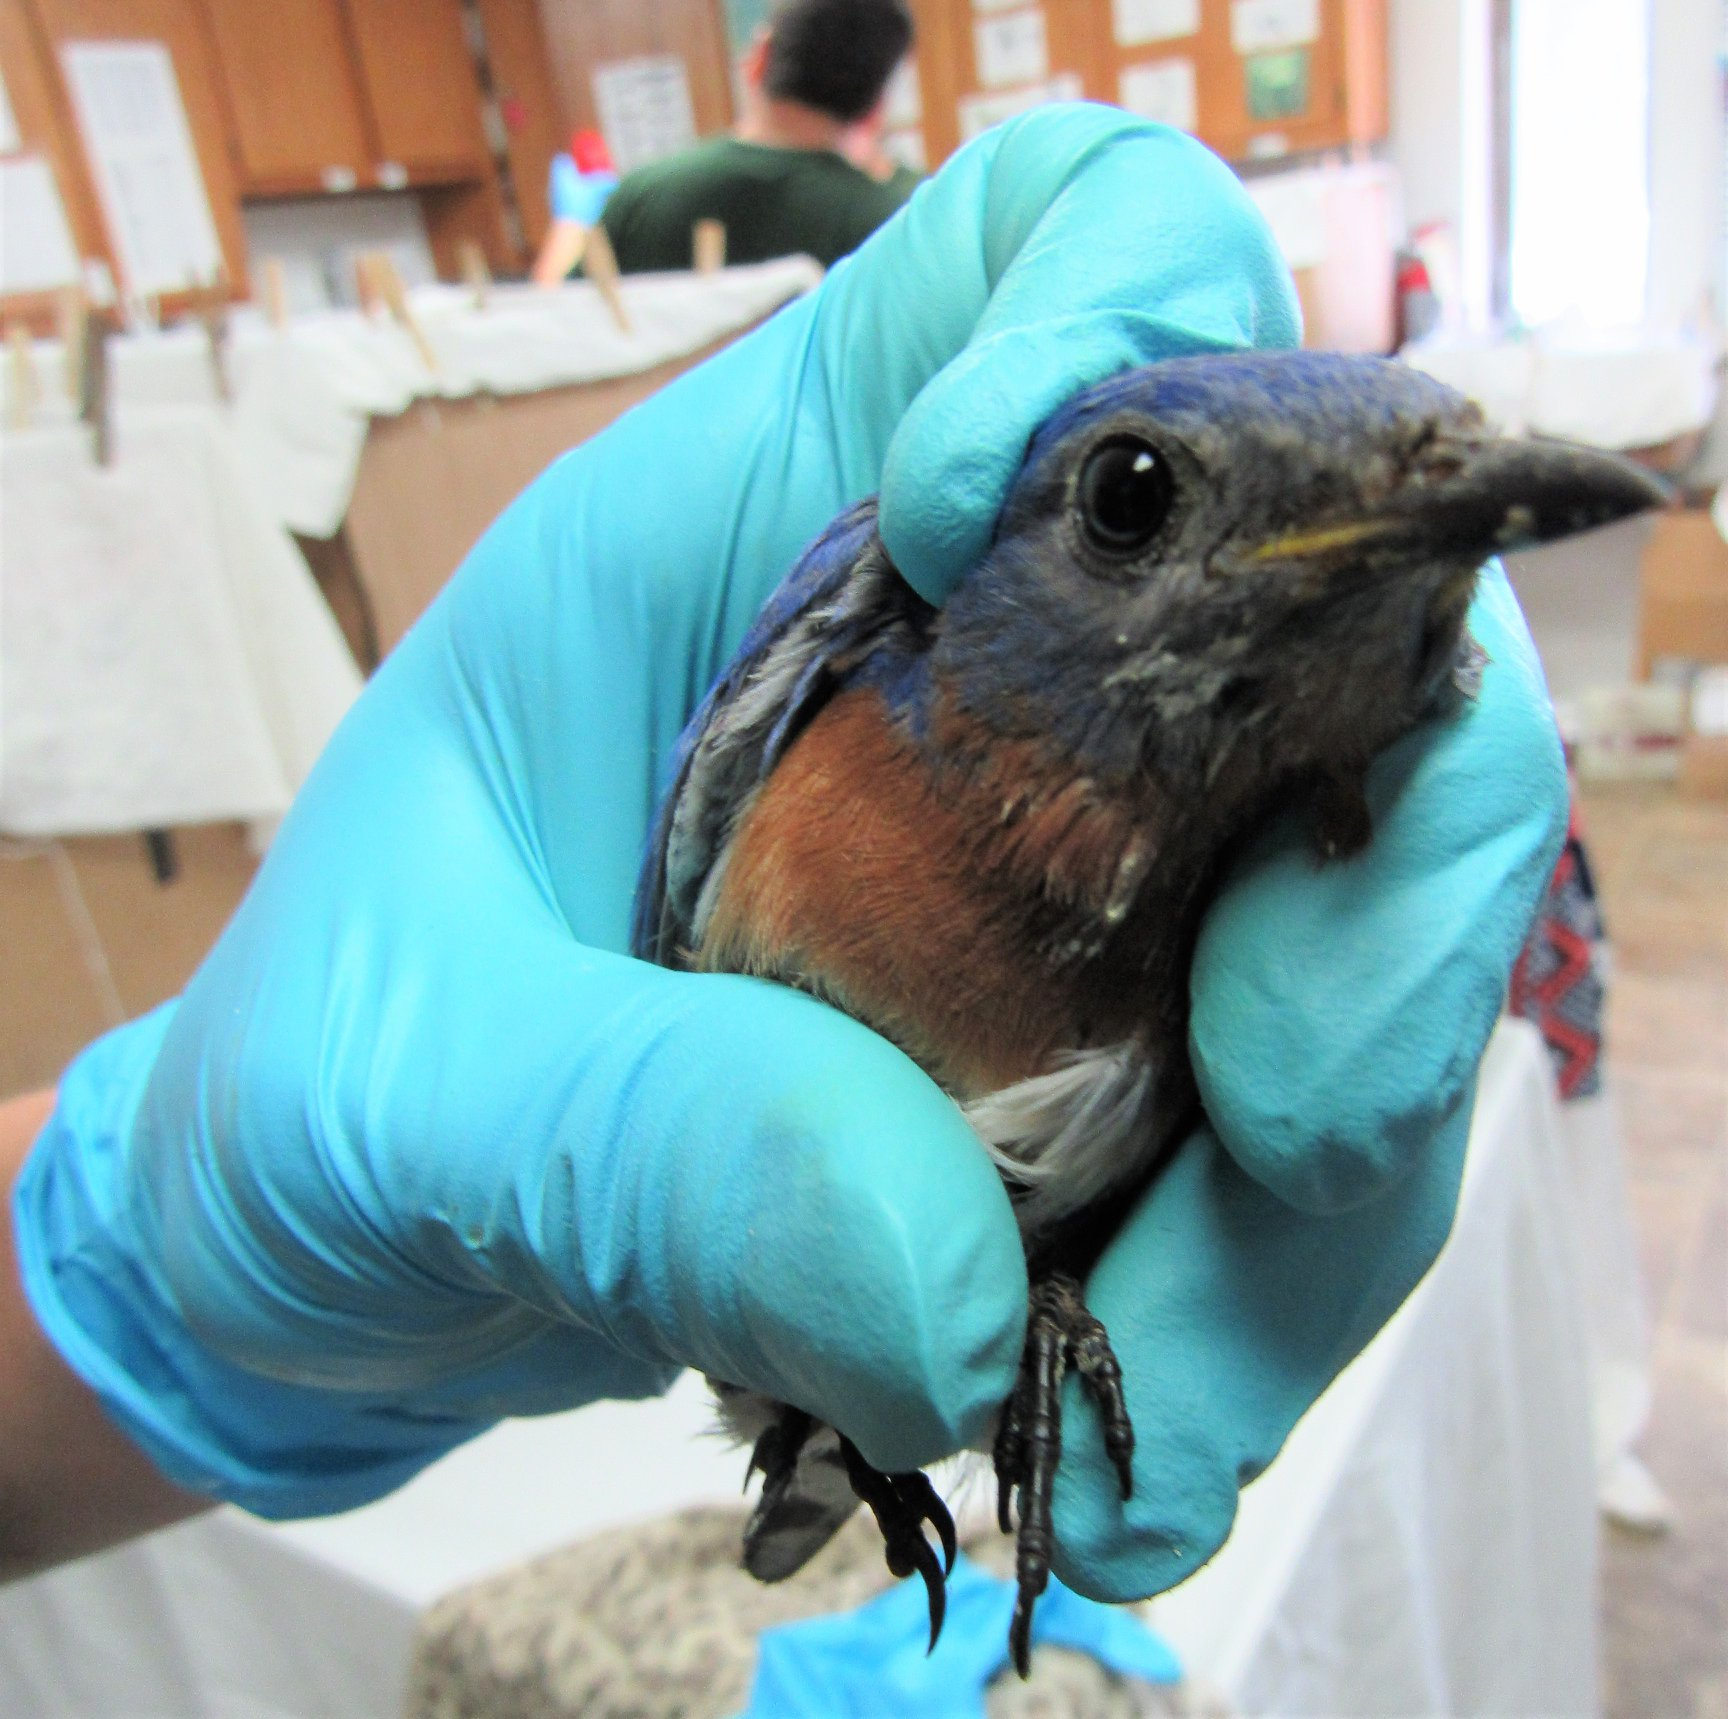 This adult male bluebird was protecting his family when he was attacked by a cat.